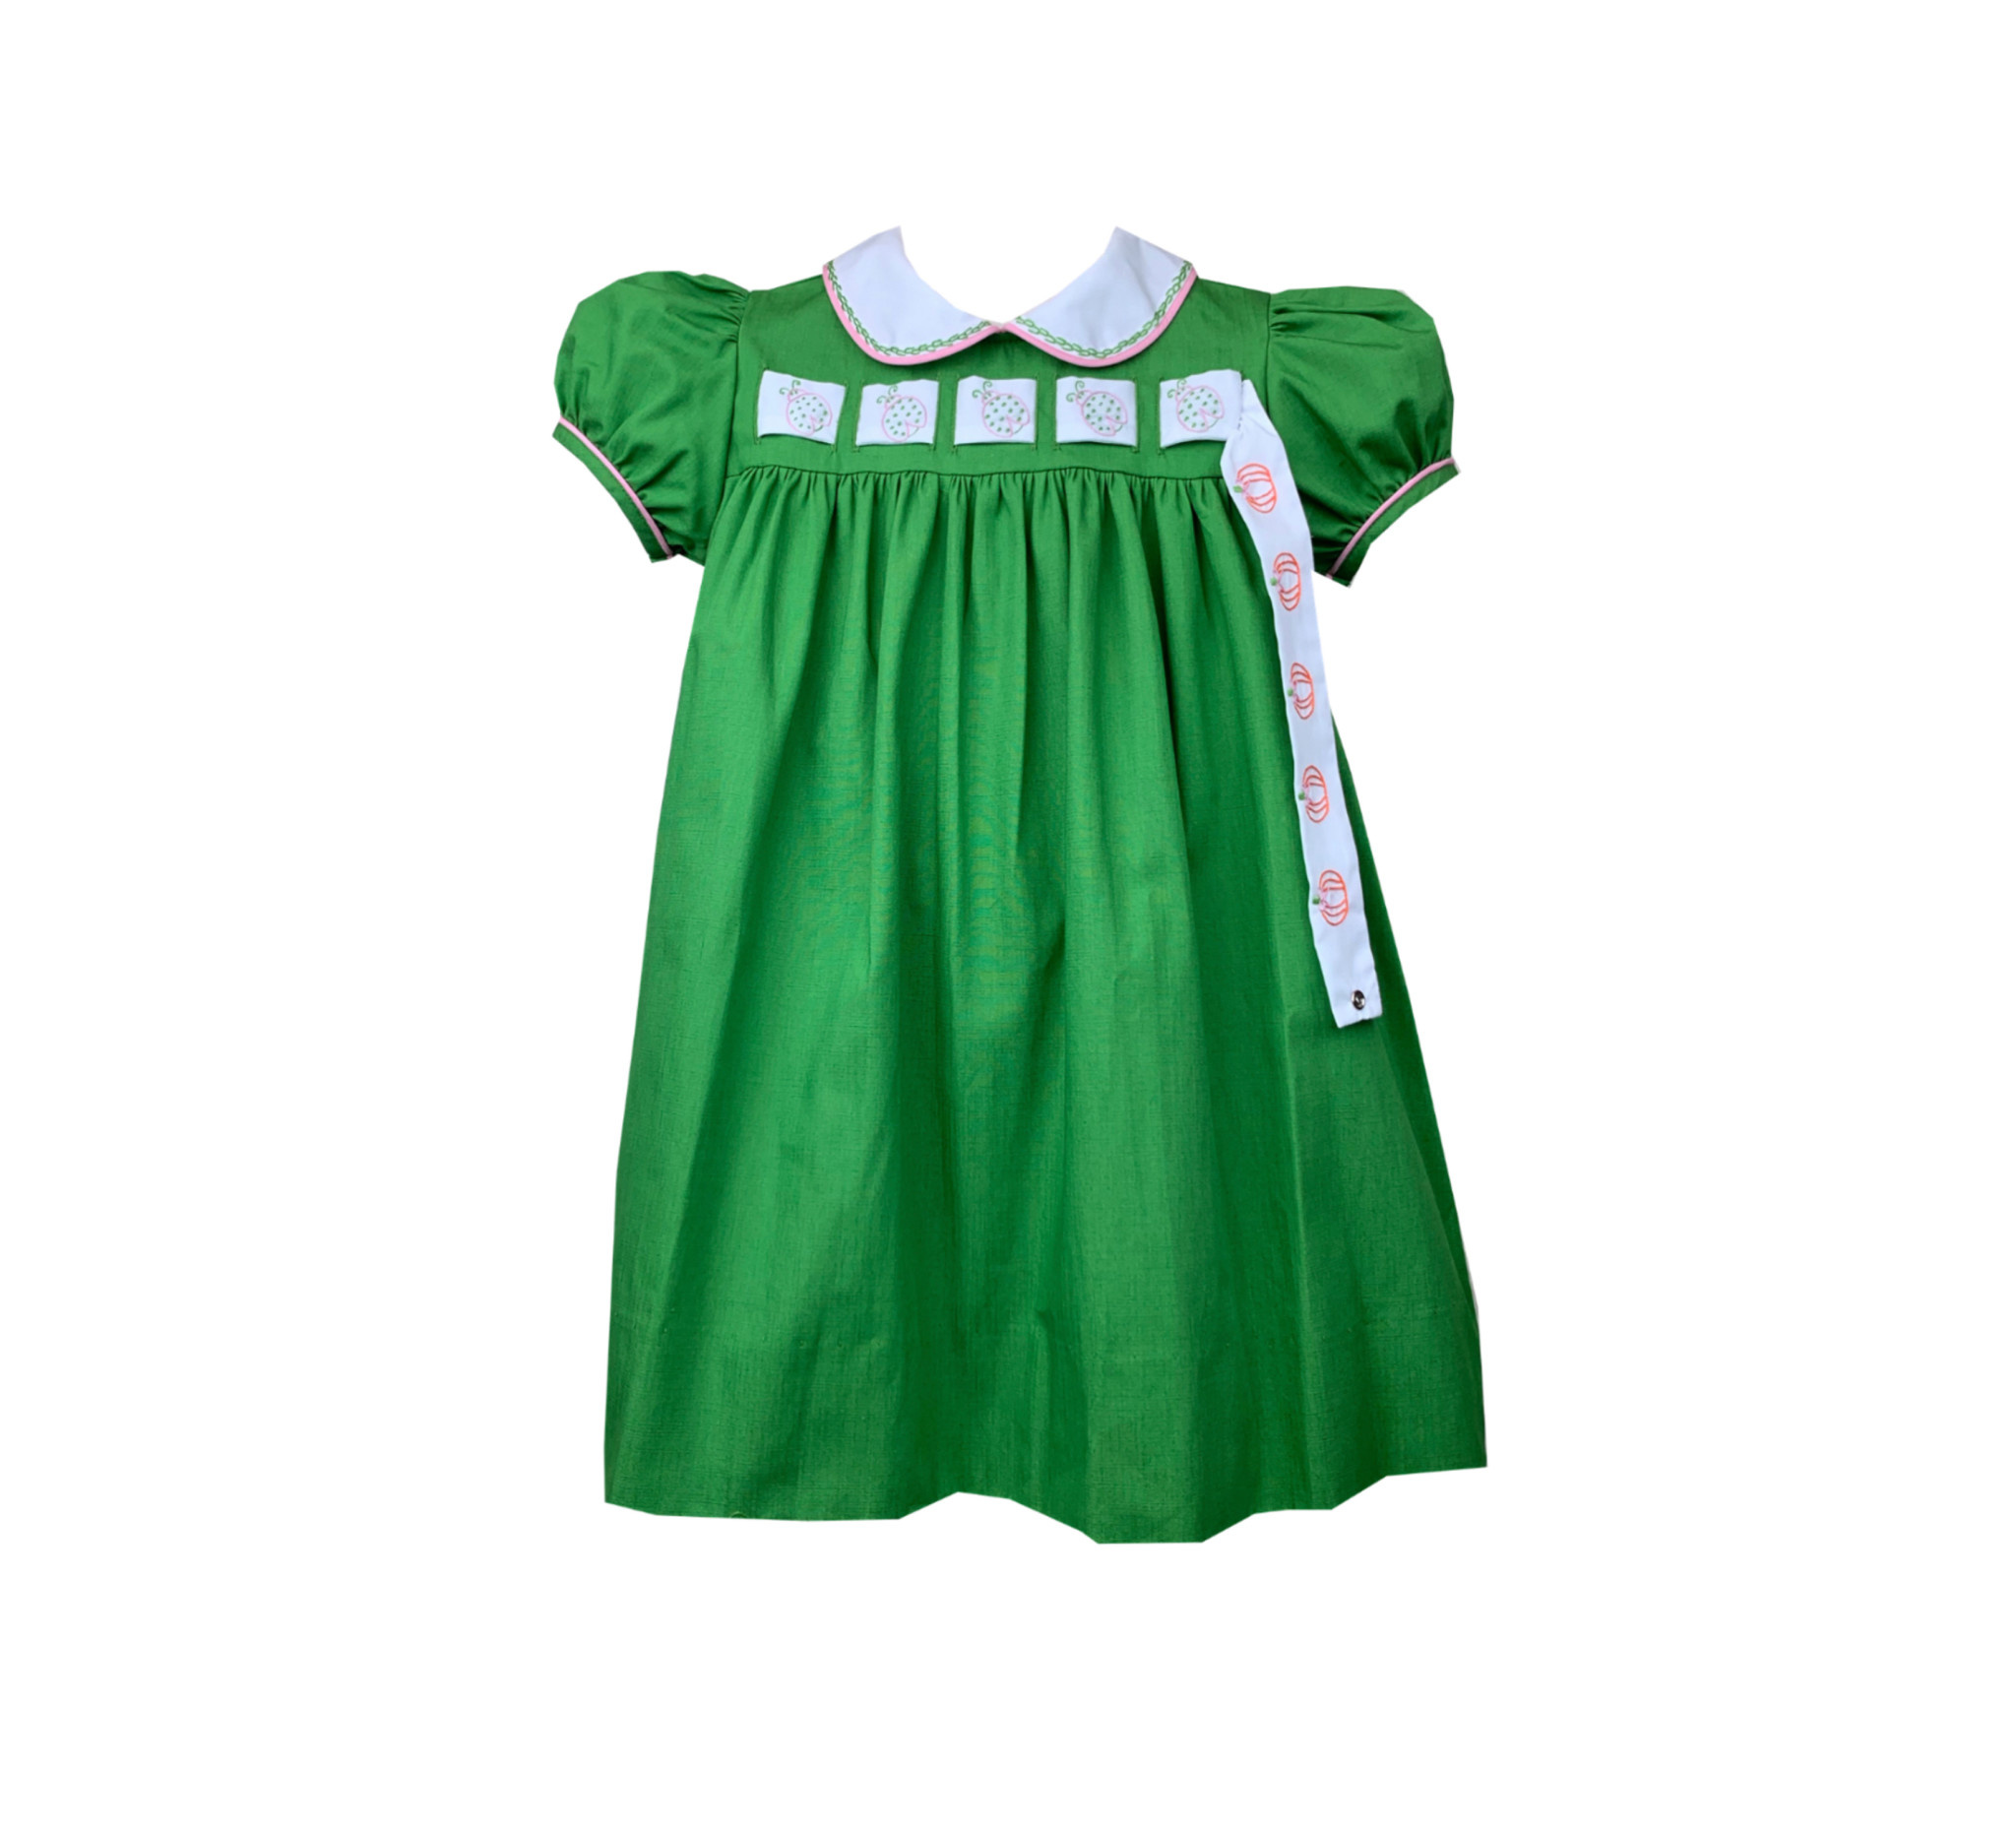 Lullaby Set Memory Making Ribbon Dress